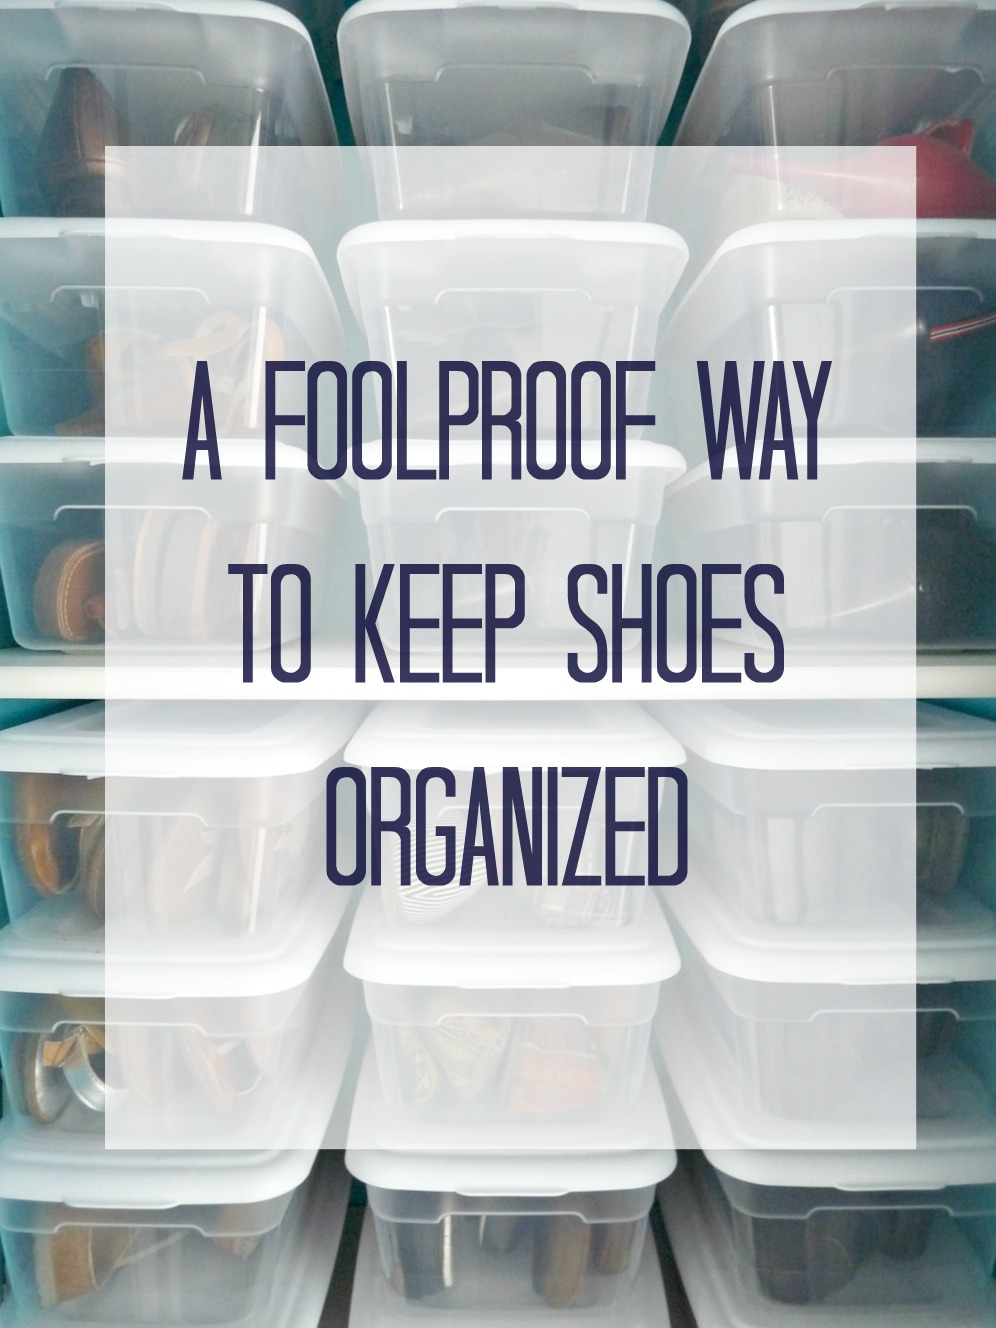 A foolproof way to organize shoes